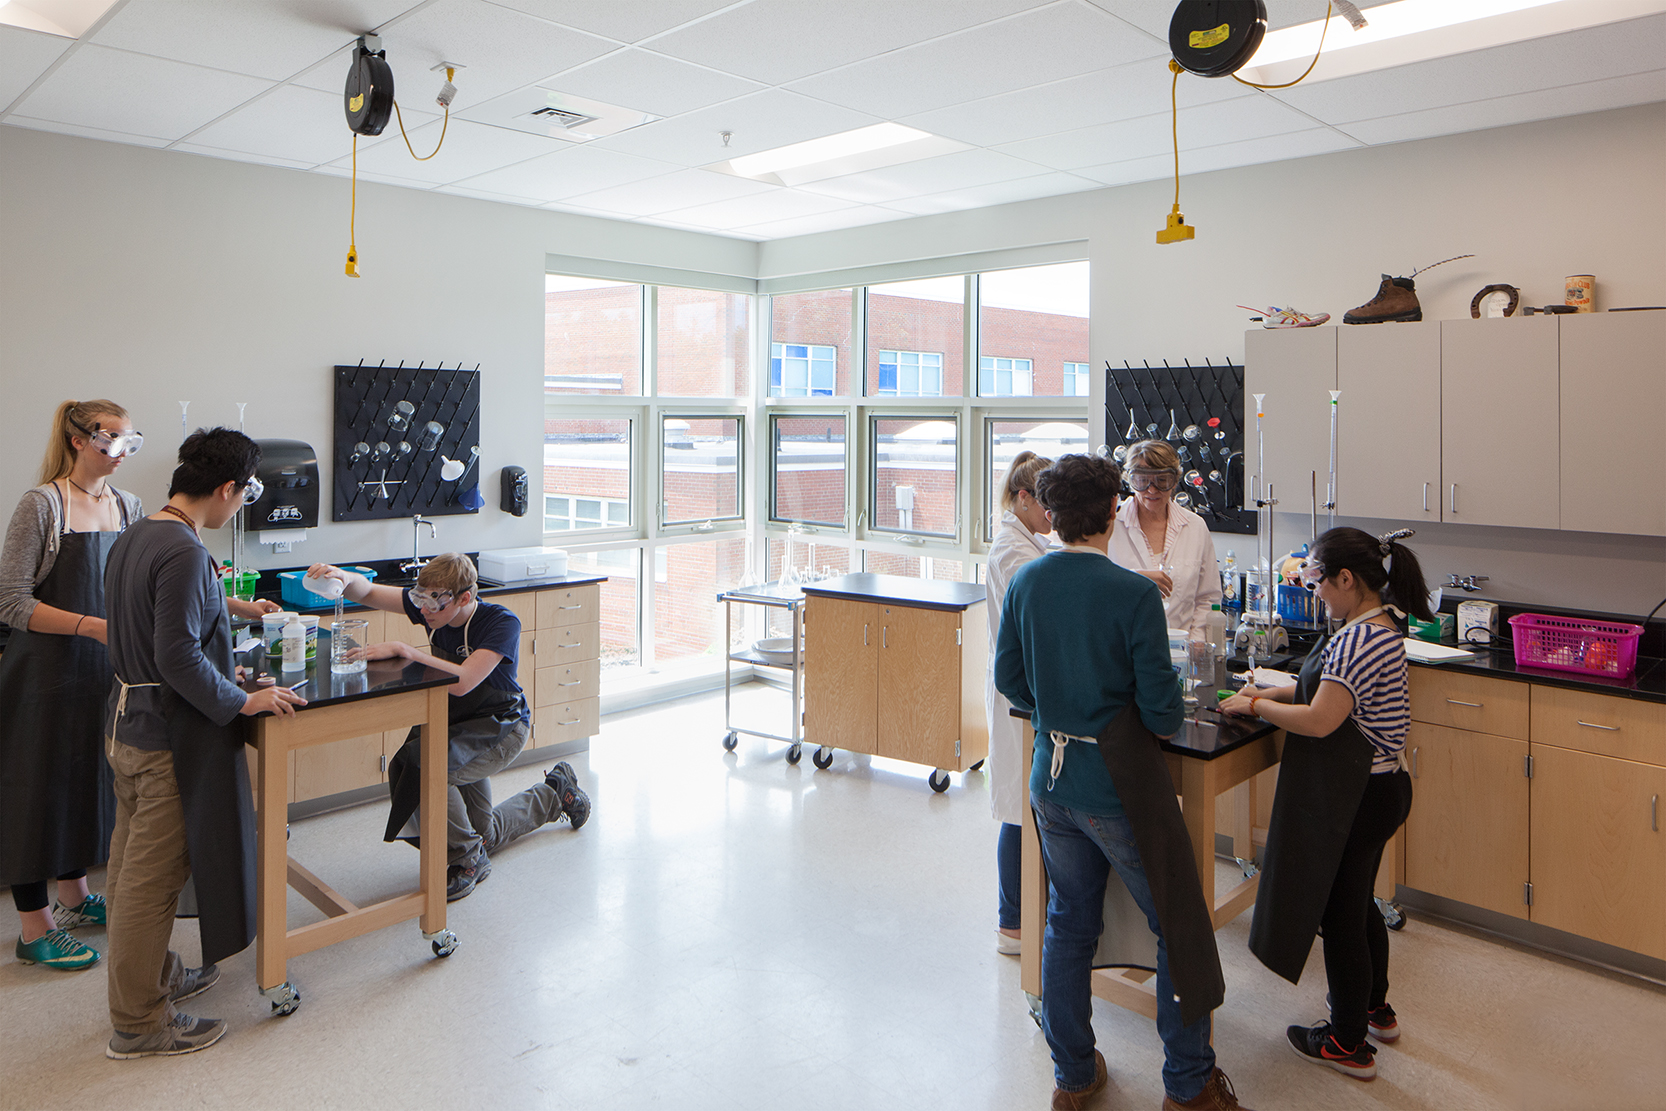 Science classes can change formats from lecture to discussion to lab work in one class period.